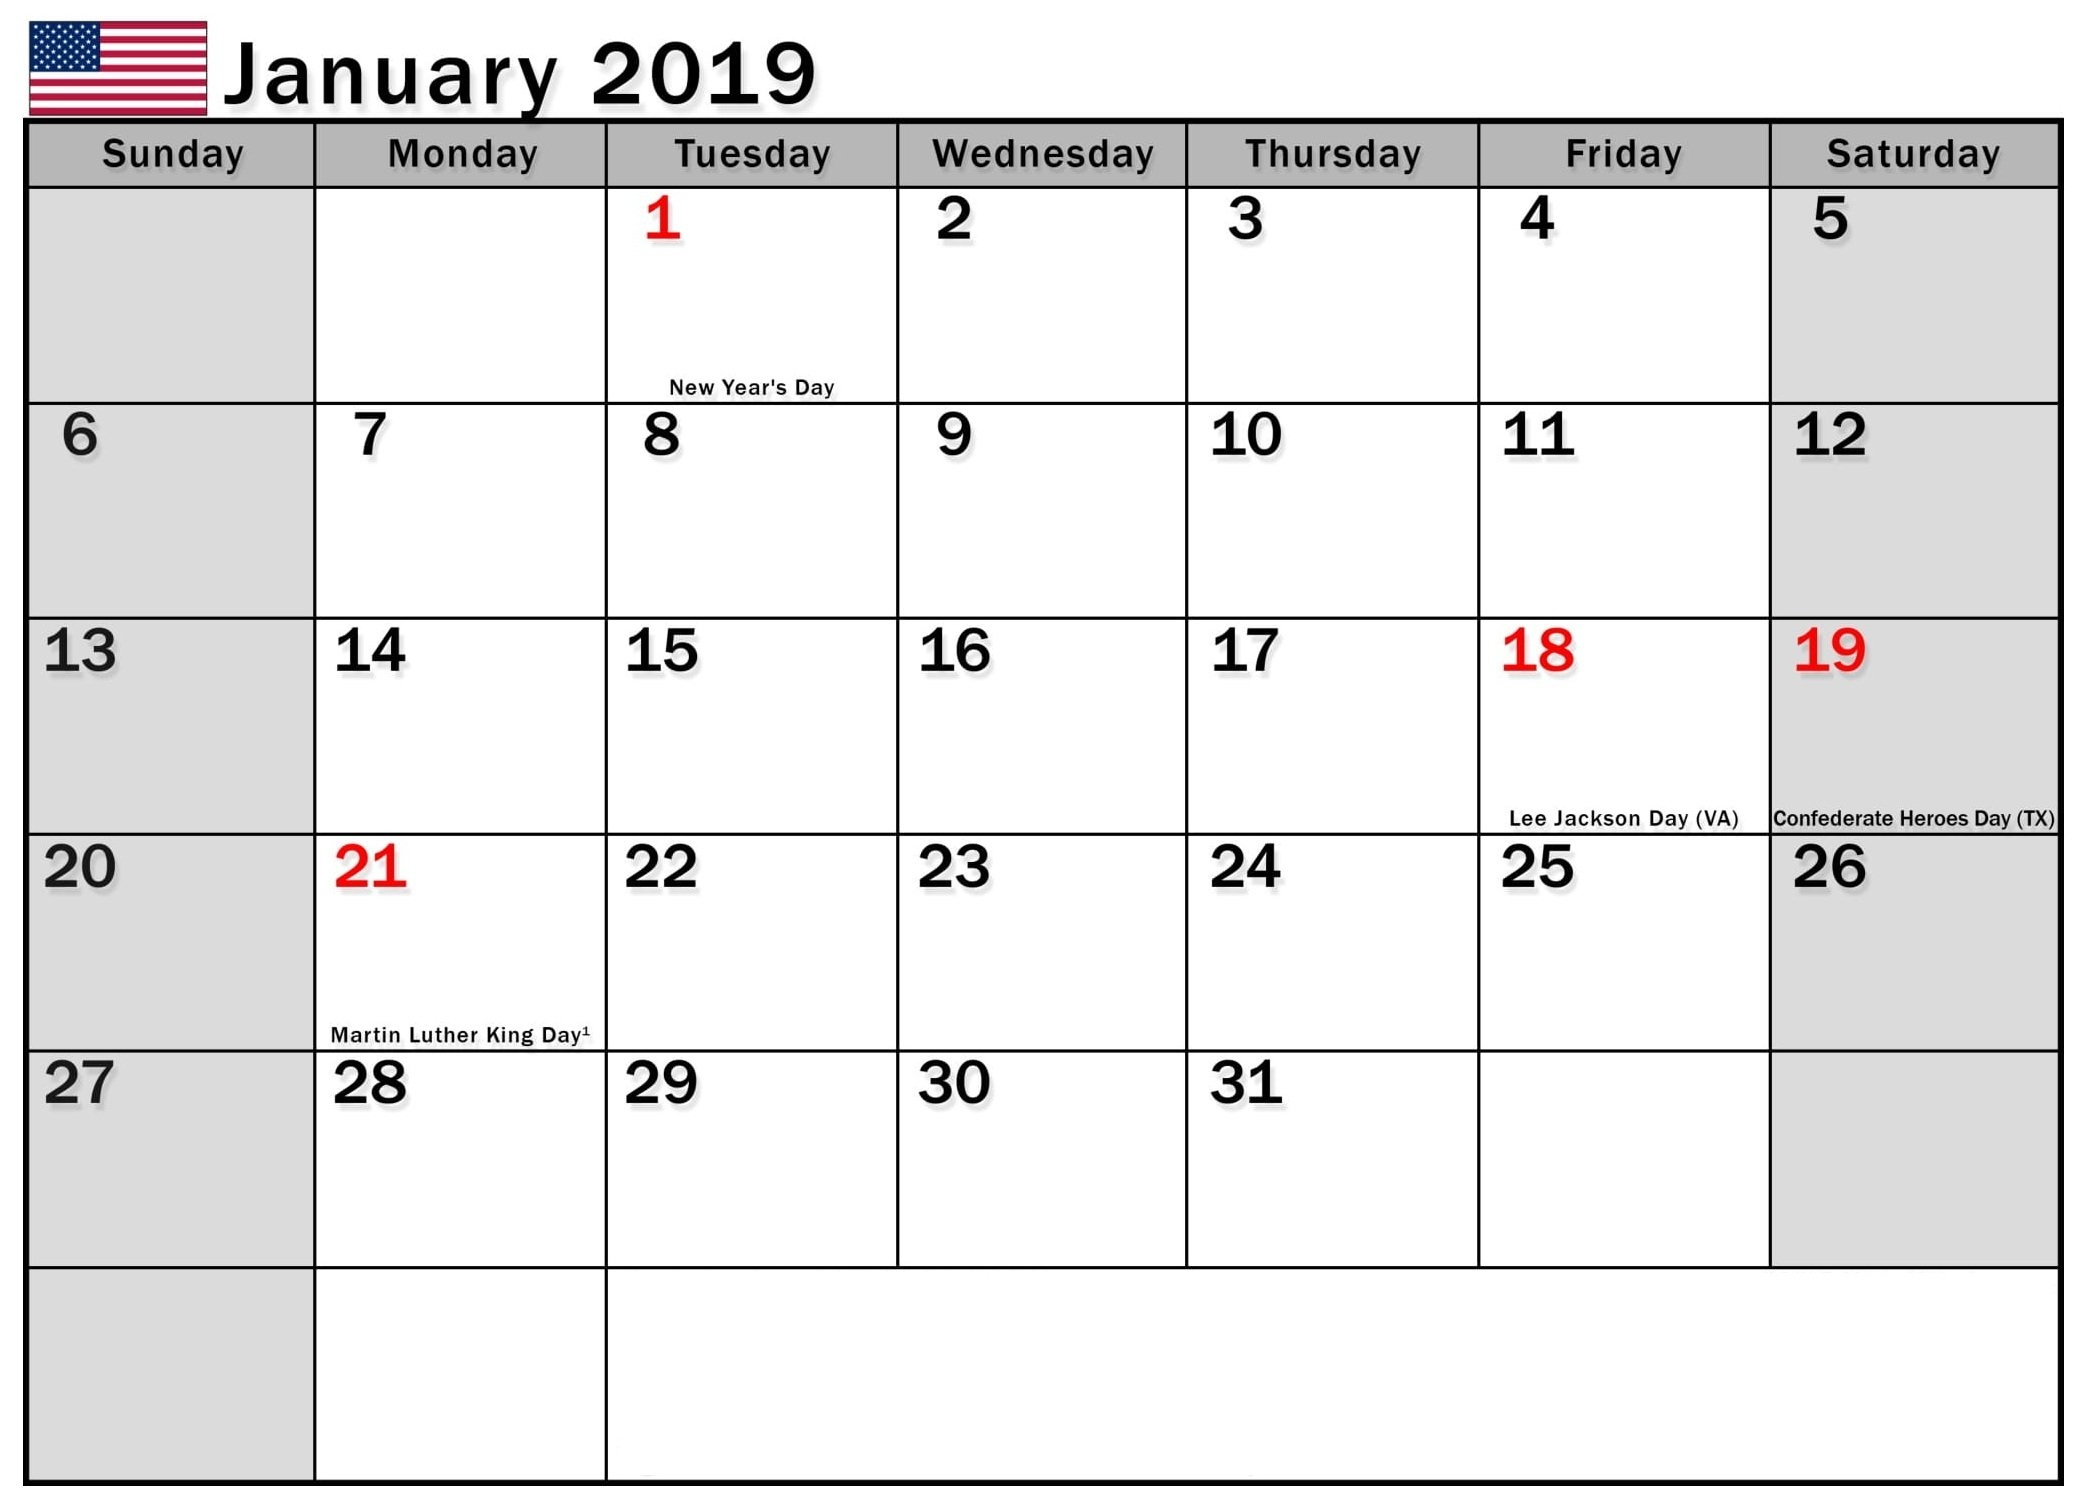 January 2019 Calendar Usa – Free Calendar Templates & Worksheets For Calendar 2019 Usa